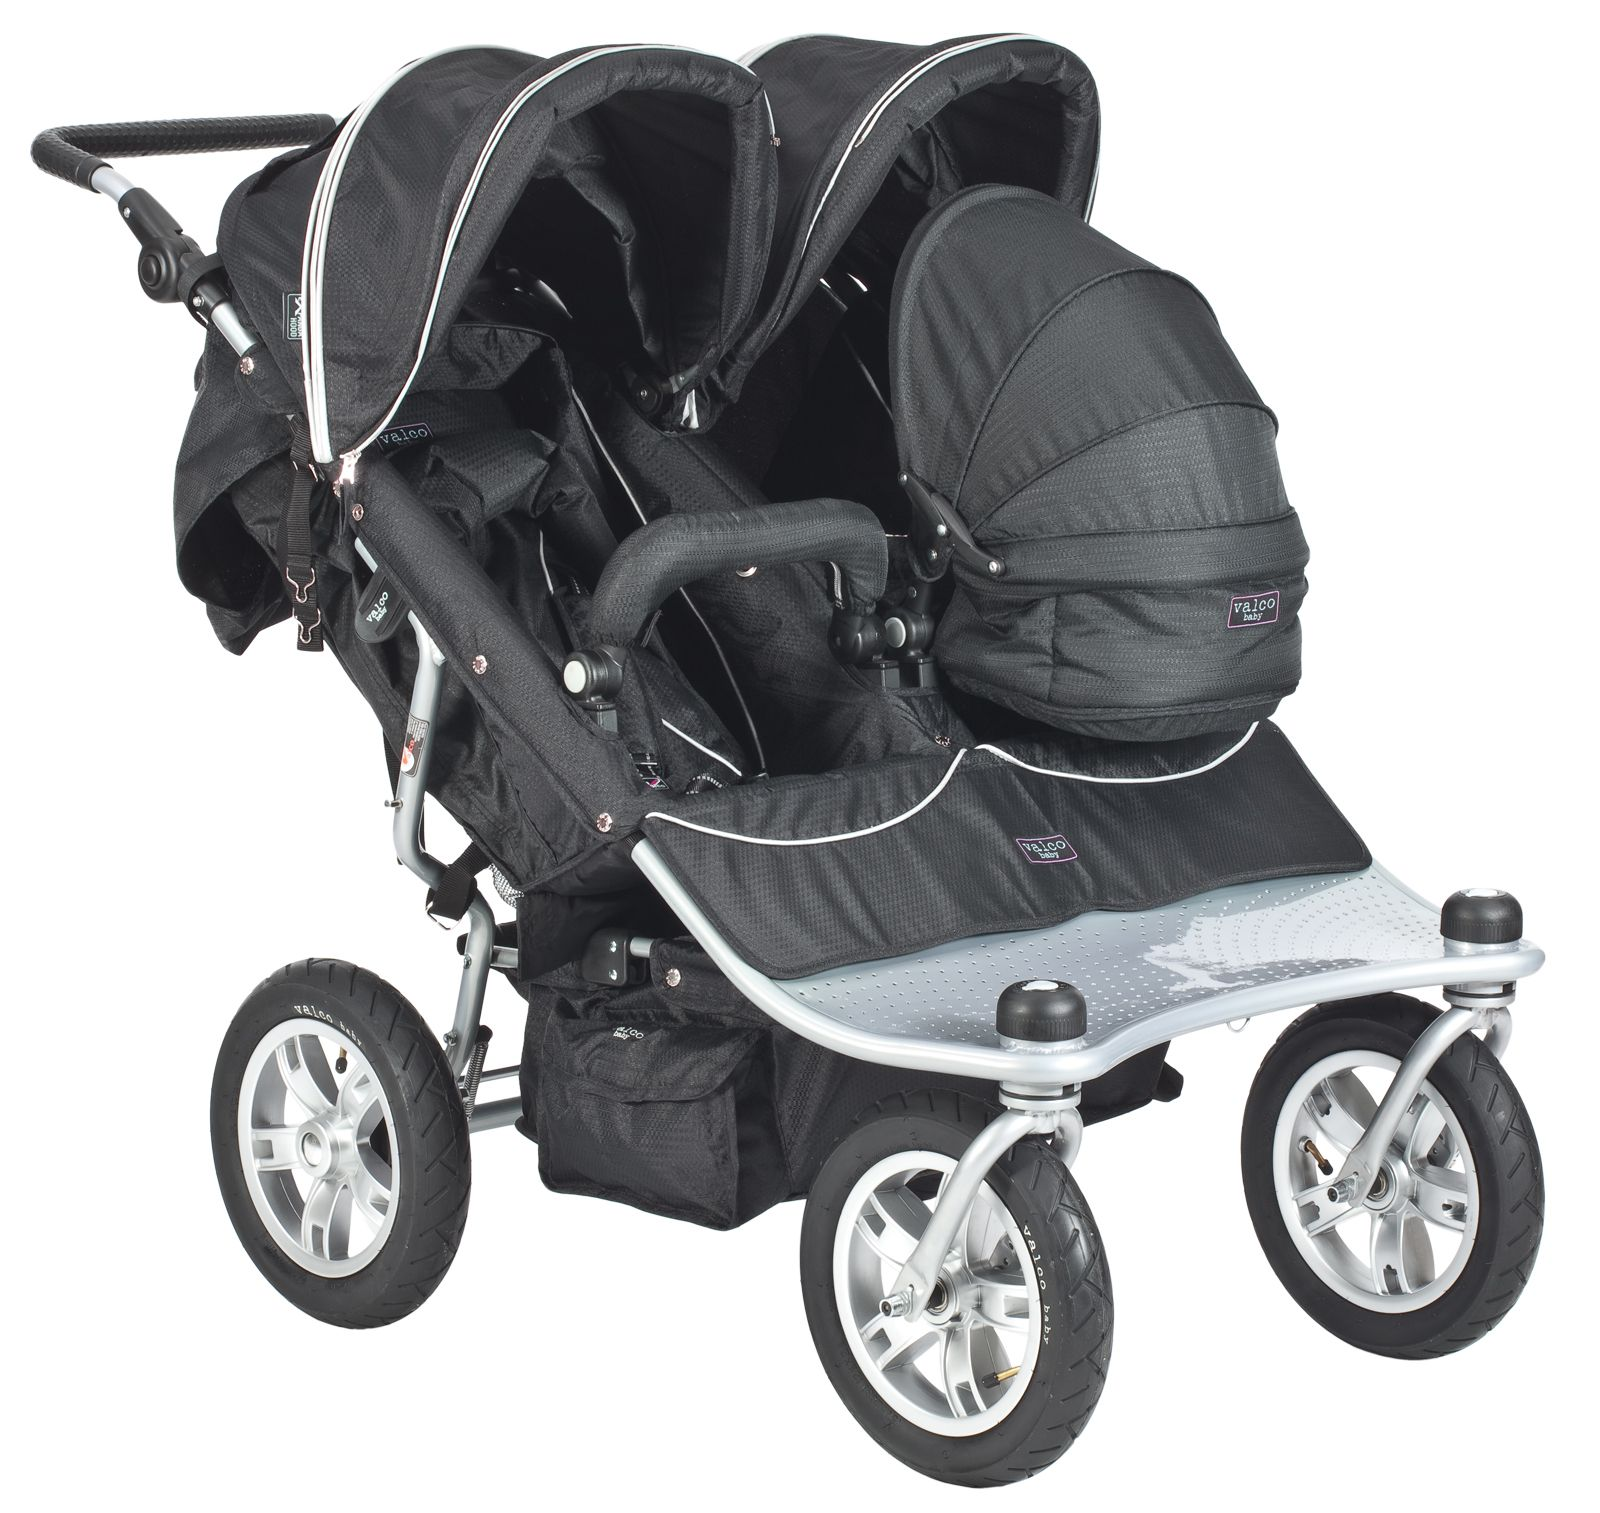 Baby bed twins - Baby Bed For Twins Strollers For Twins With Car Seats Infant Strollers For Twins With